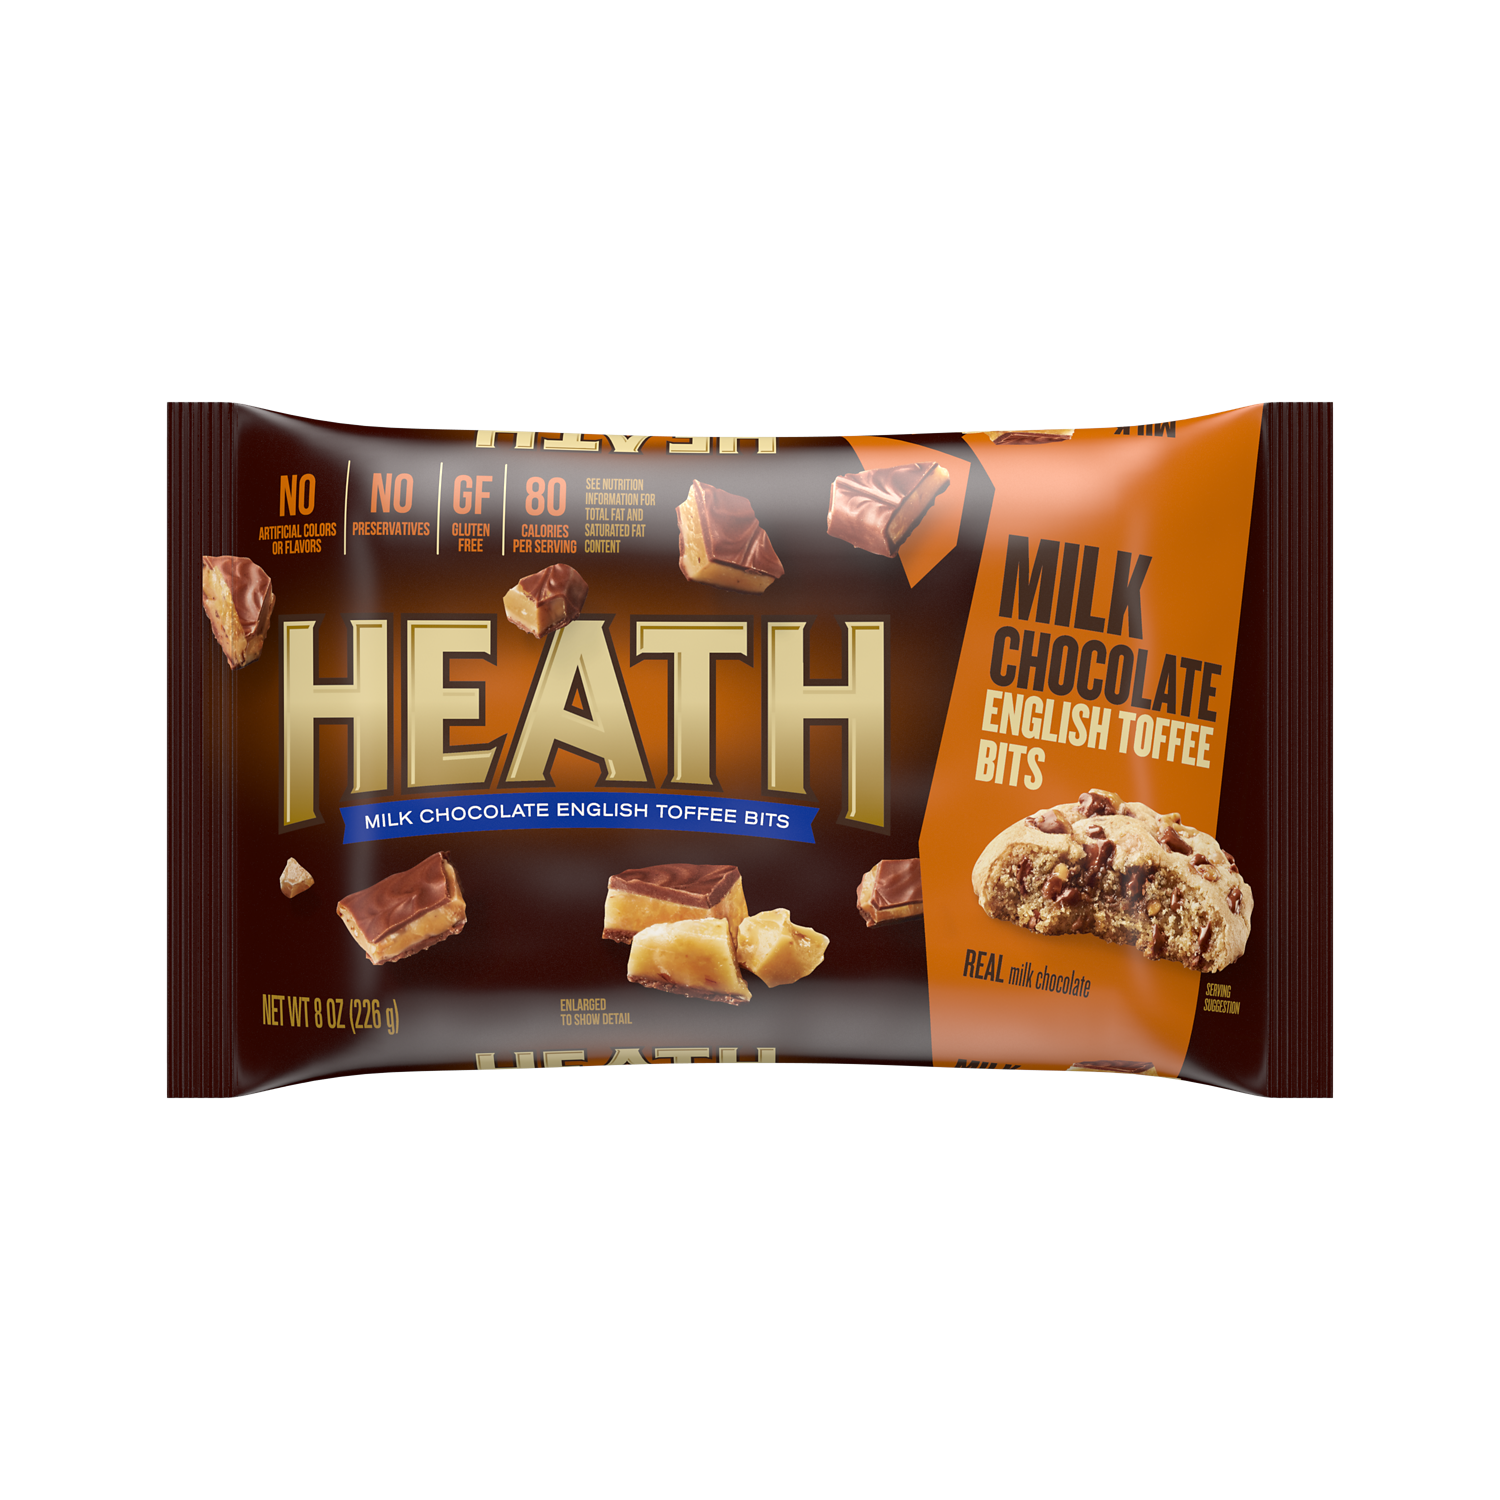 HEATH Milk Chocolate English Toffee Bits, 8 oz bag - Front of Package